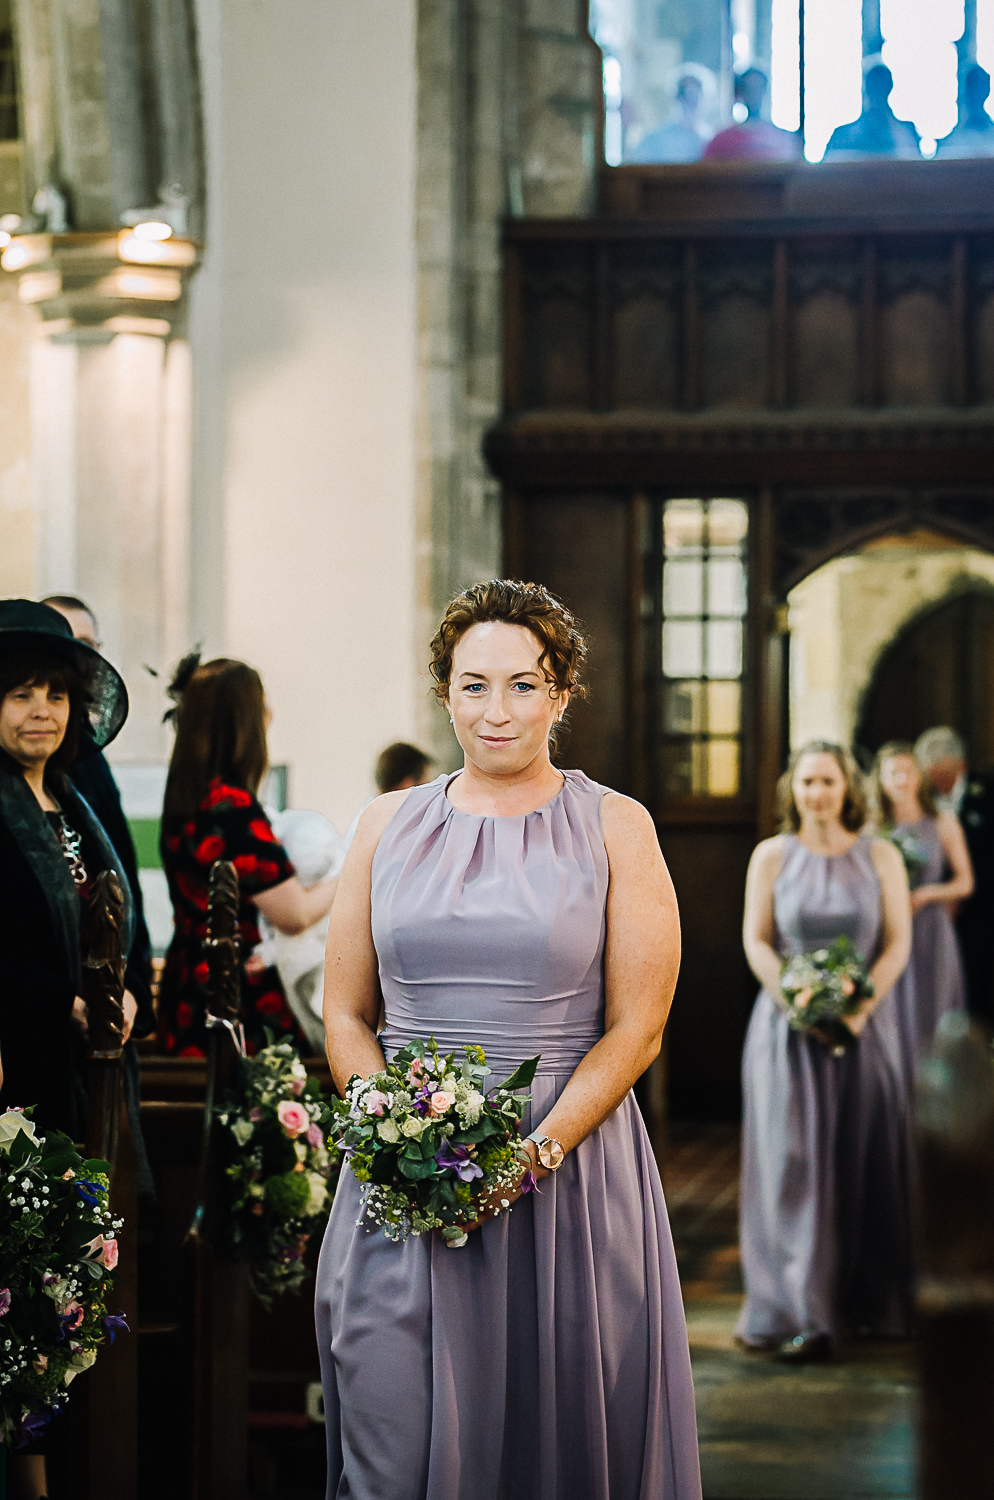 Bridesmaid Walking Down the Aisle at Cottenham All Saint's Church - Swynford Manor Wedding Photographer